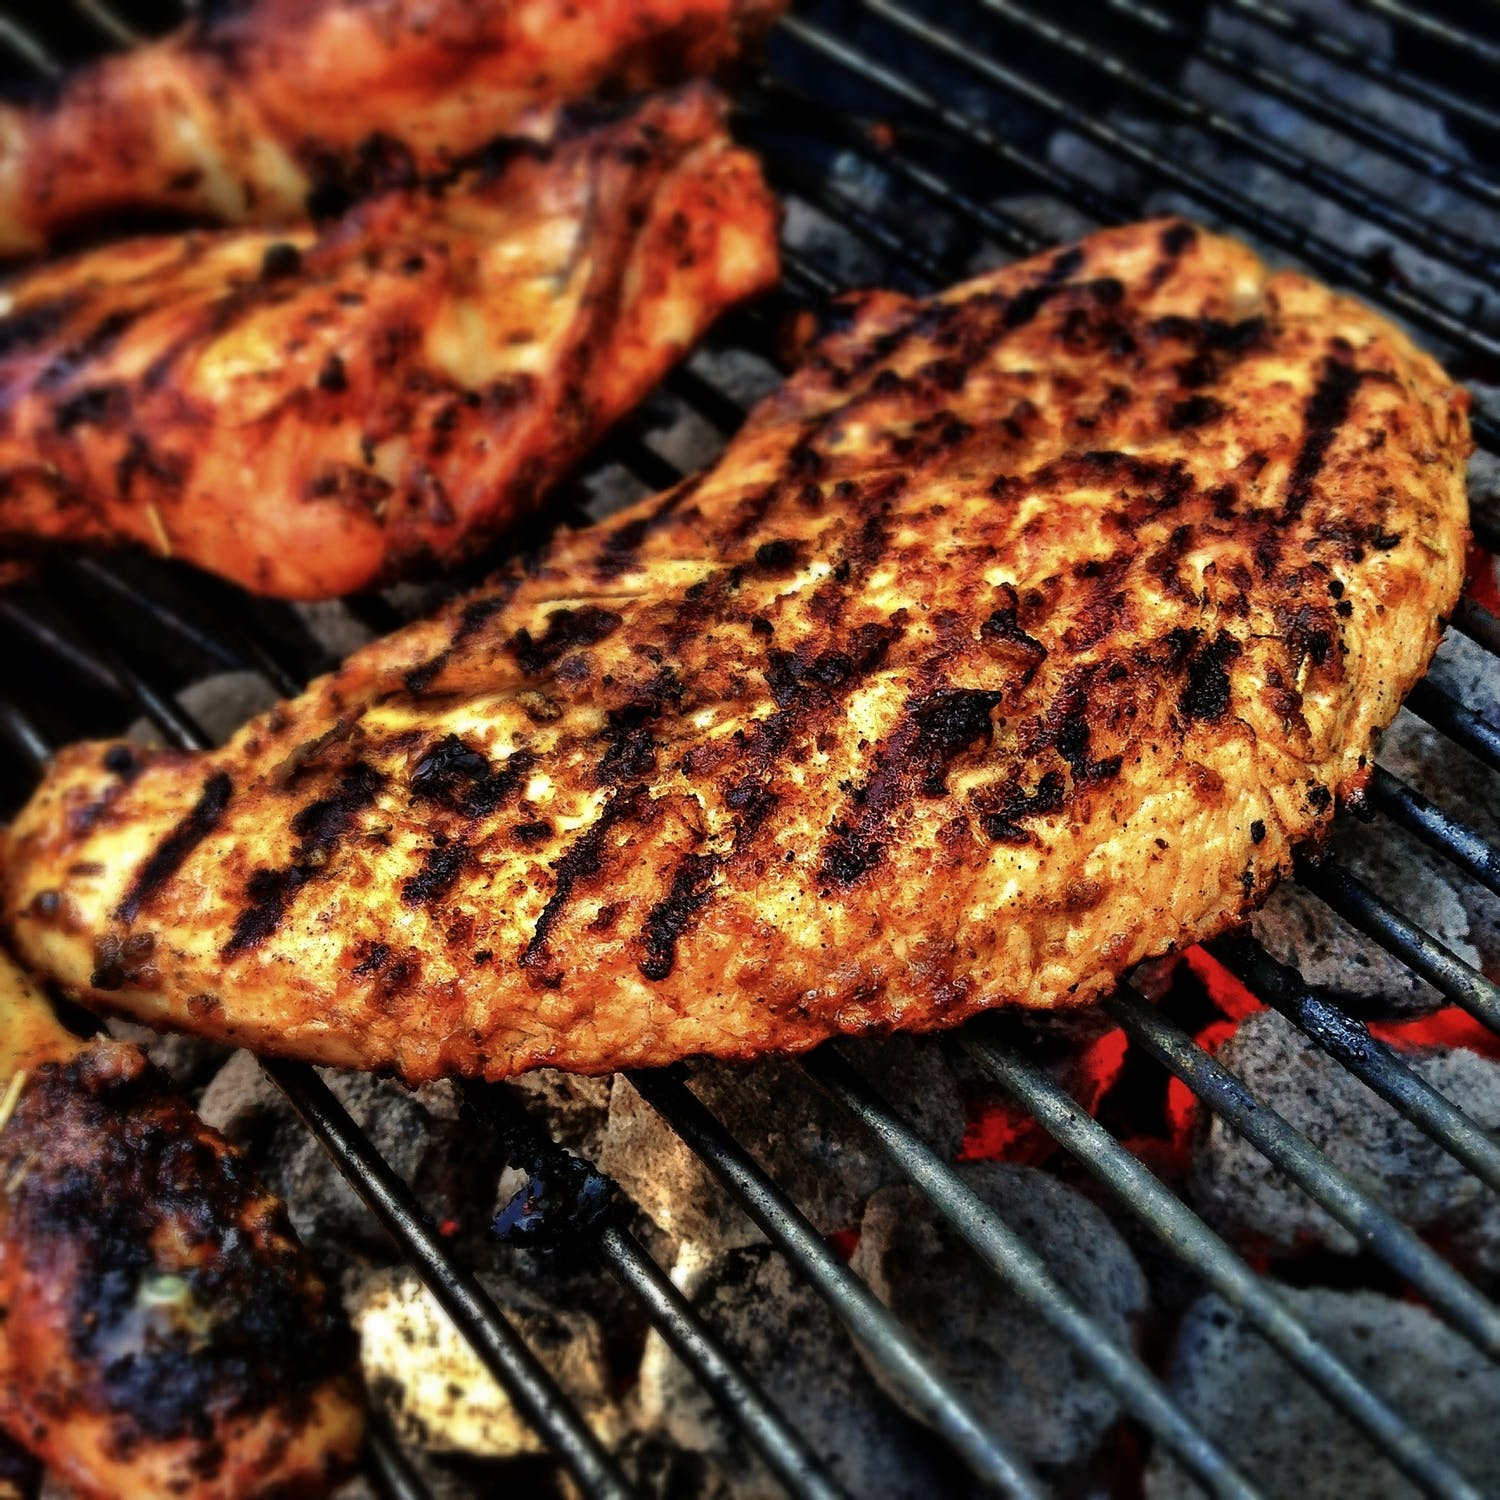 grilled-chicken-keto-fast-food-diet